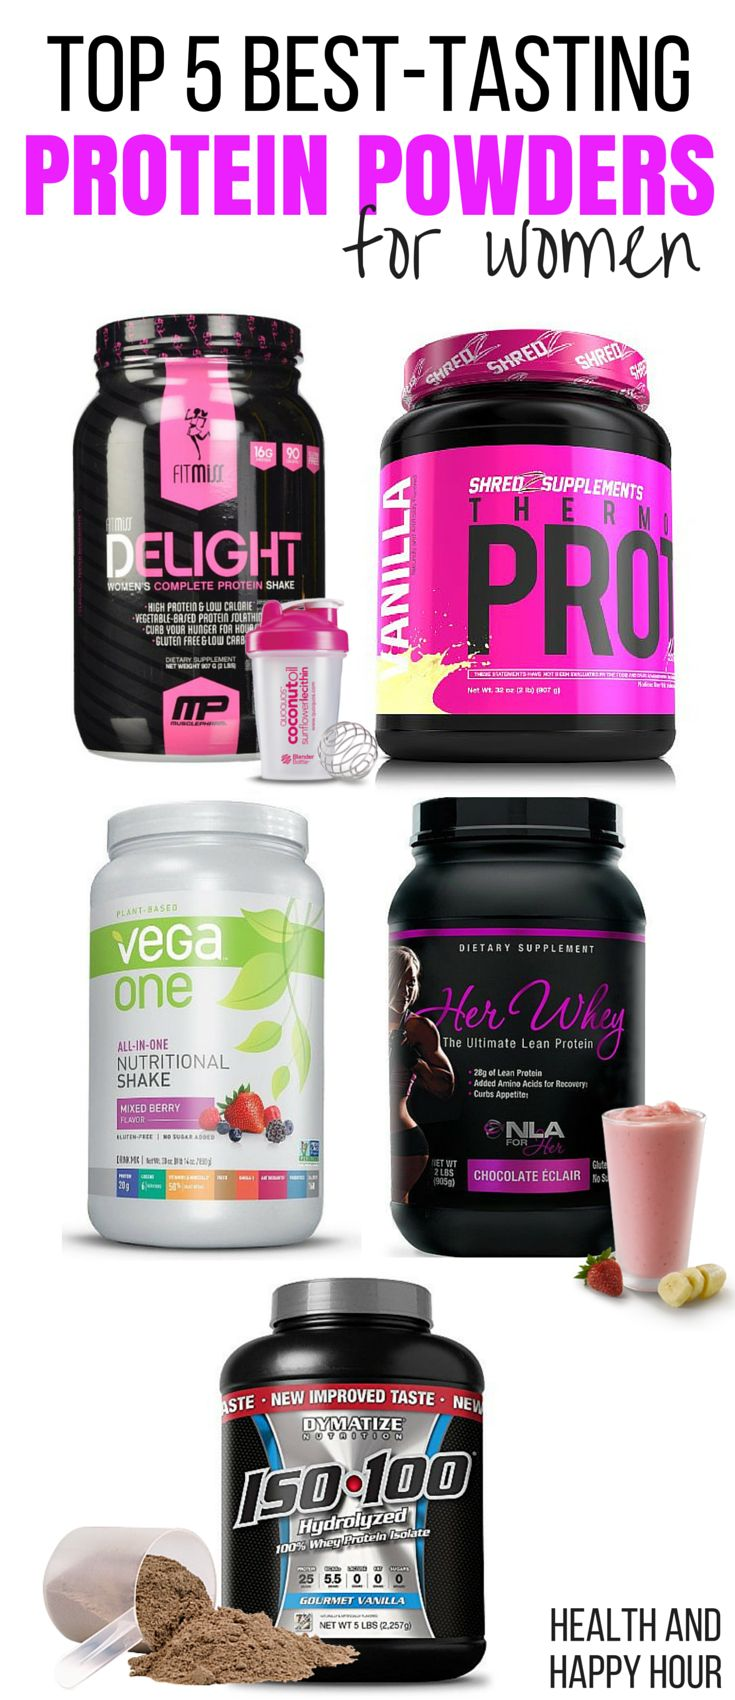 These healthy protein powders can help you tone up and lose weight fast, and they're specifically for women! http://healthandhappyhour.com/top-5-best-tasting-protein-powders-for-women/